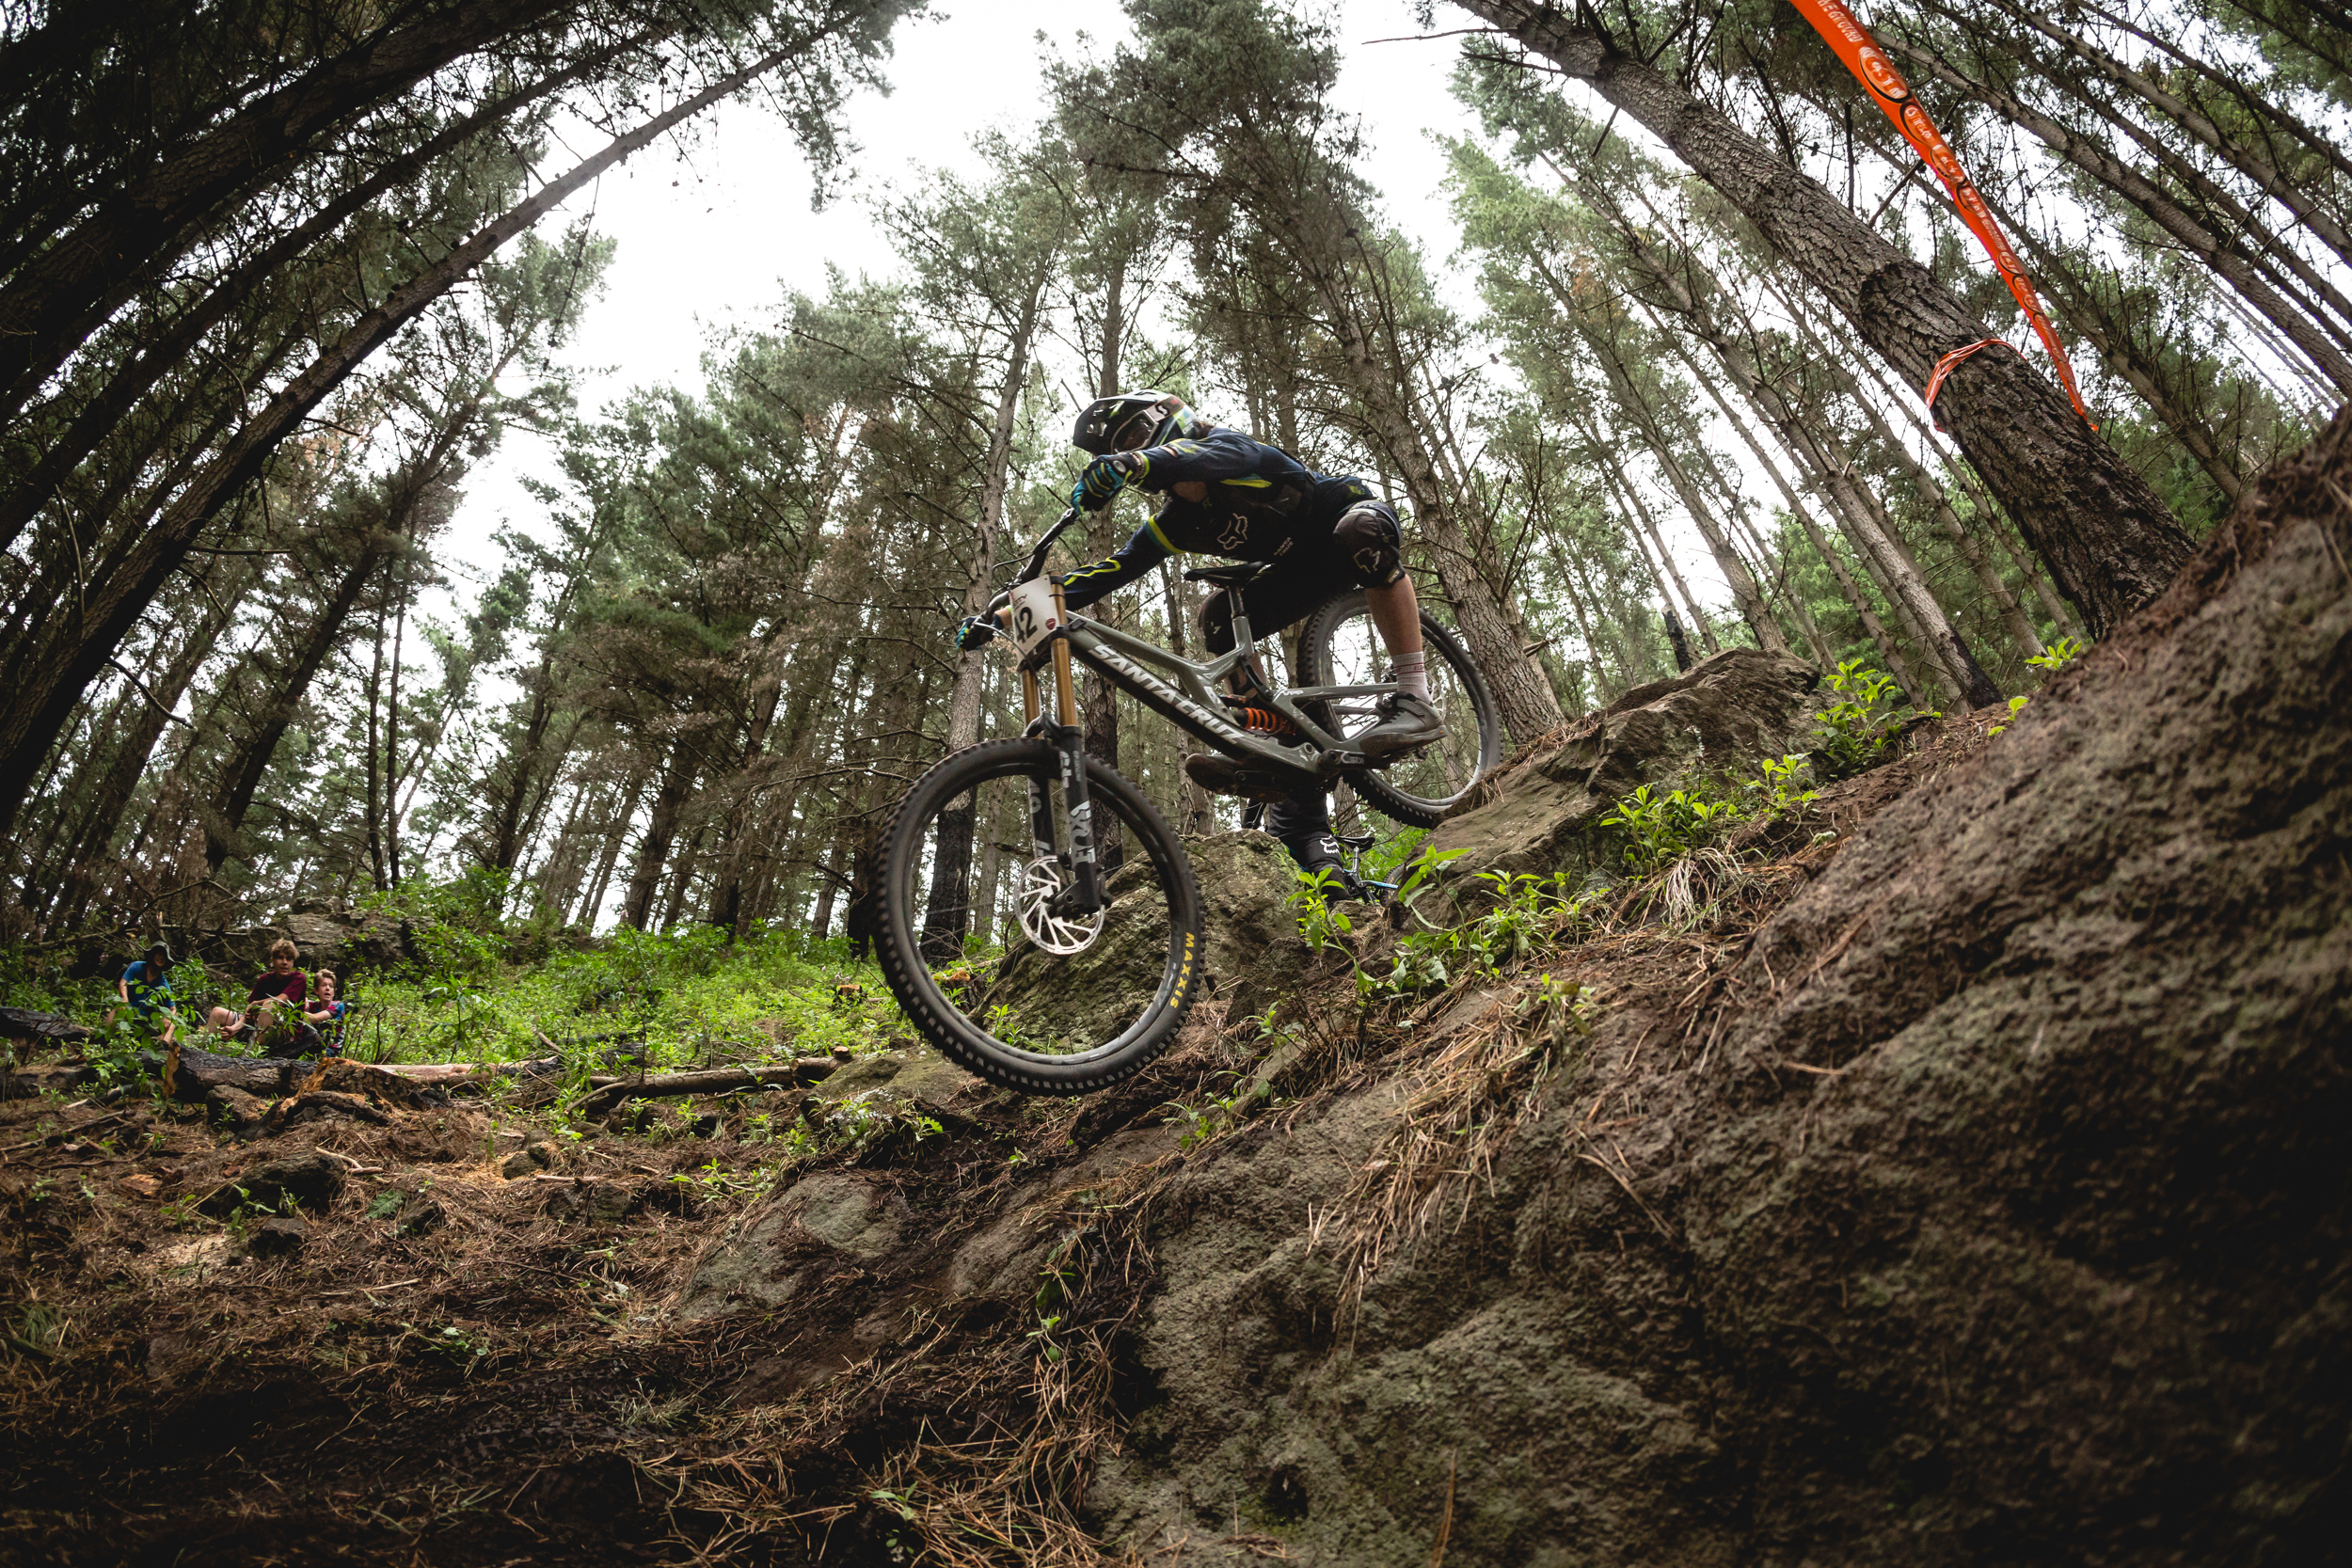 Finn Hawkesby-Brown (16) rock skimming his way down the GC Downhill track at the NZ Open on his way to 6th overall and 1st under 19 rider. Photo   Cameron Mackenzie